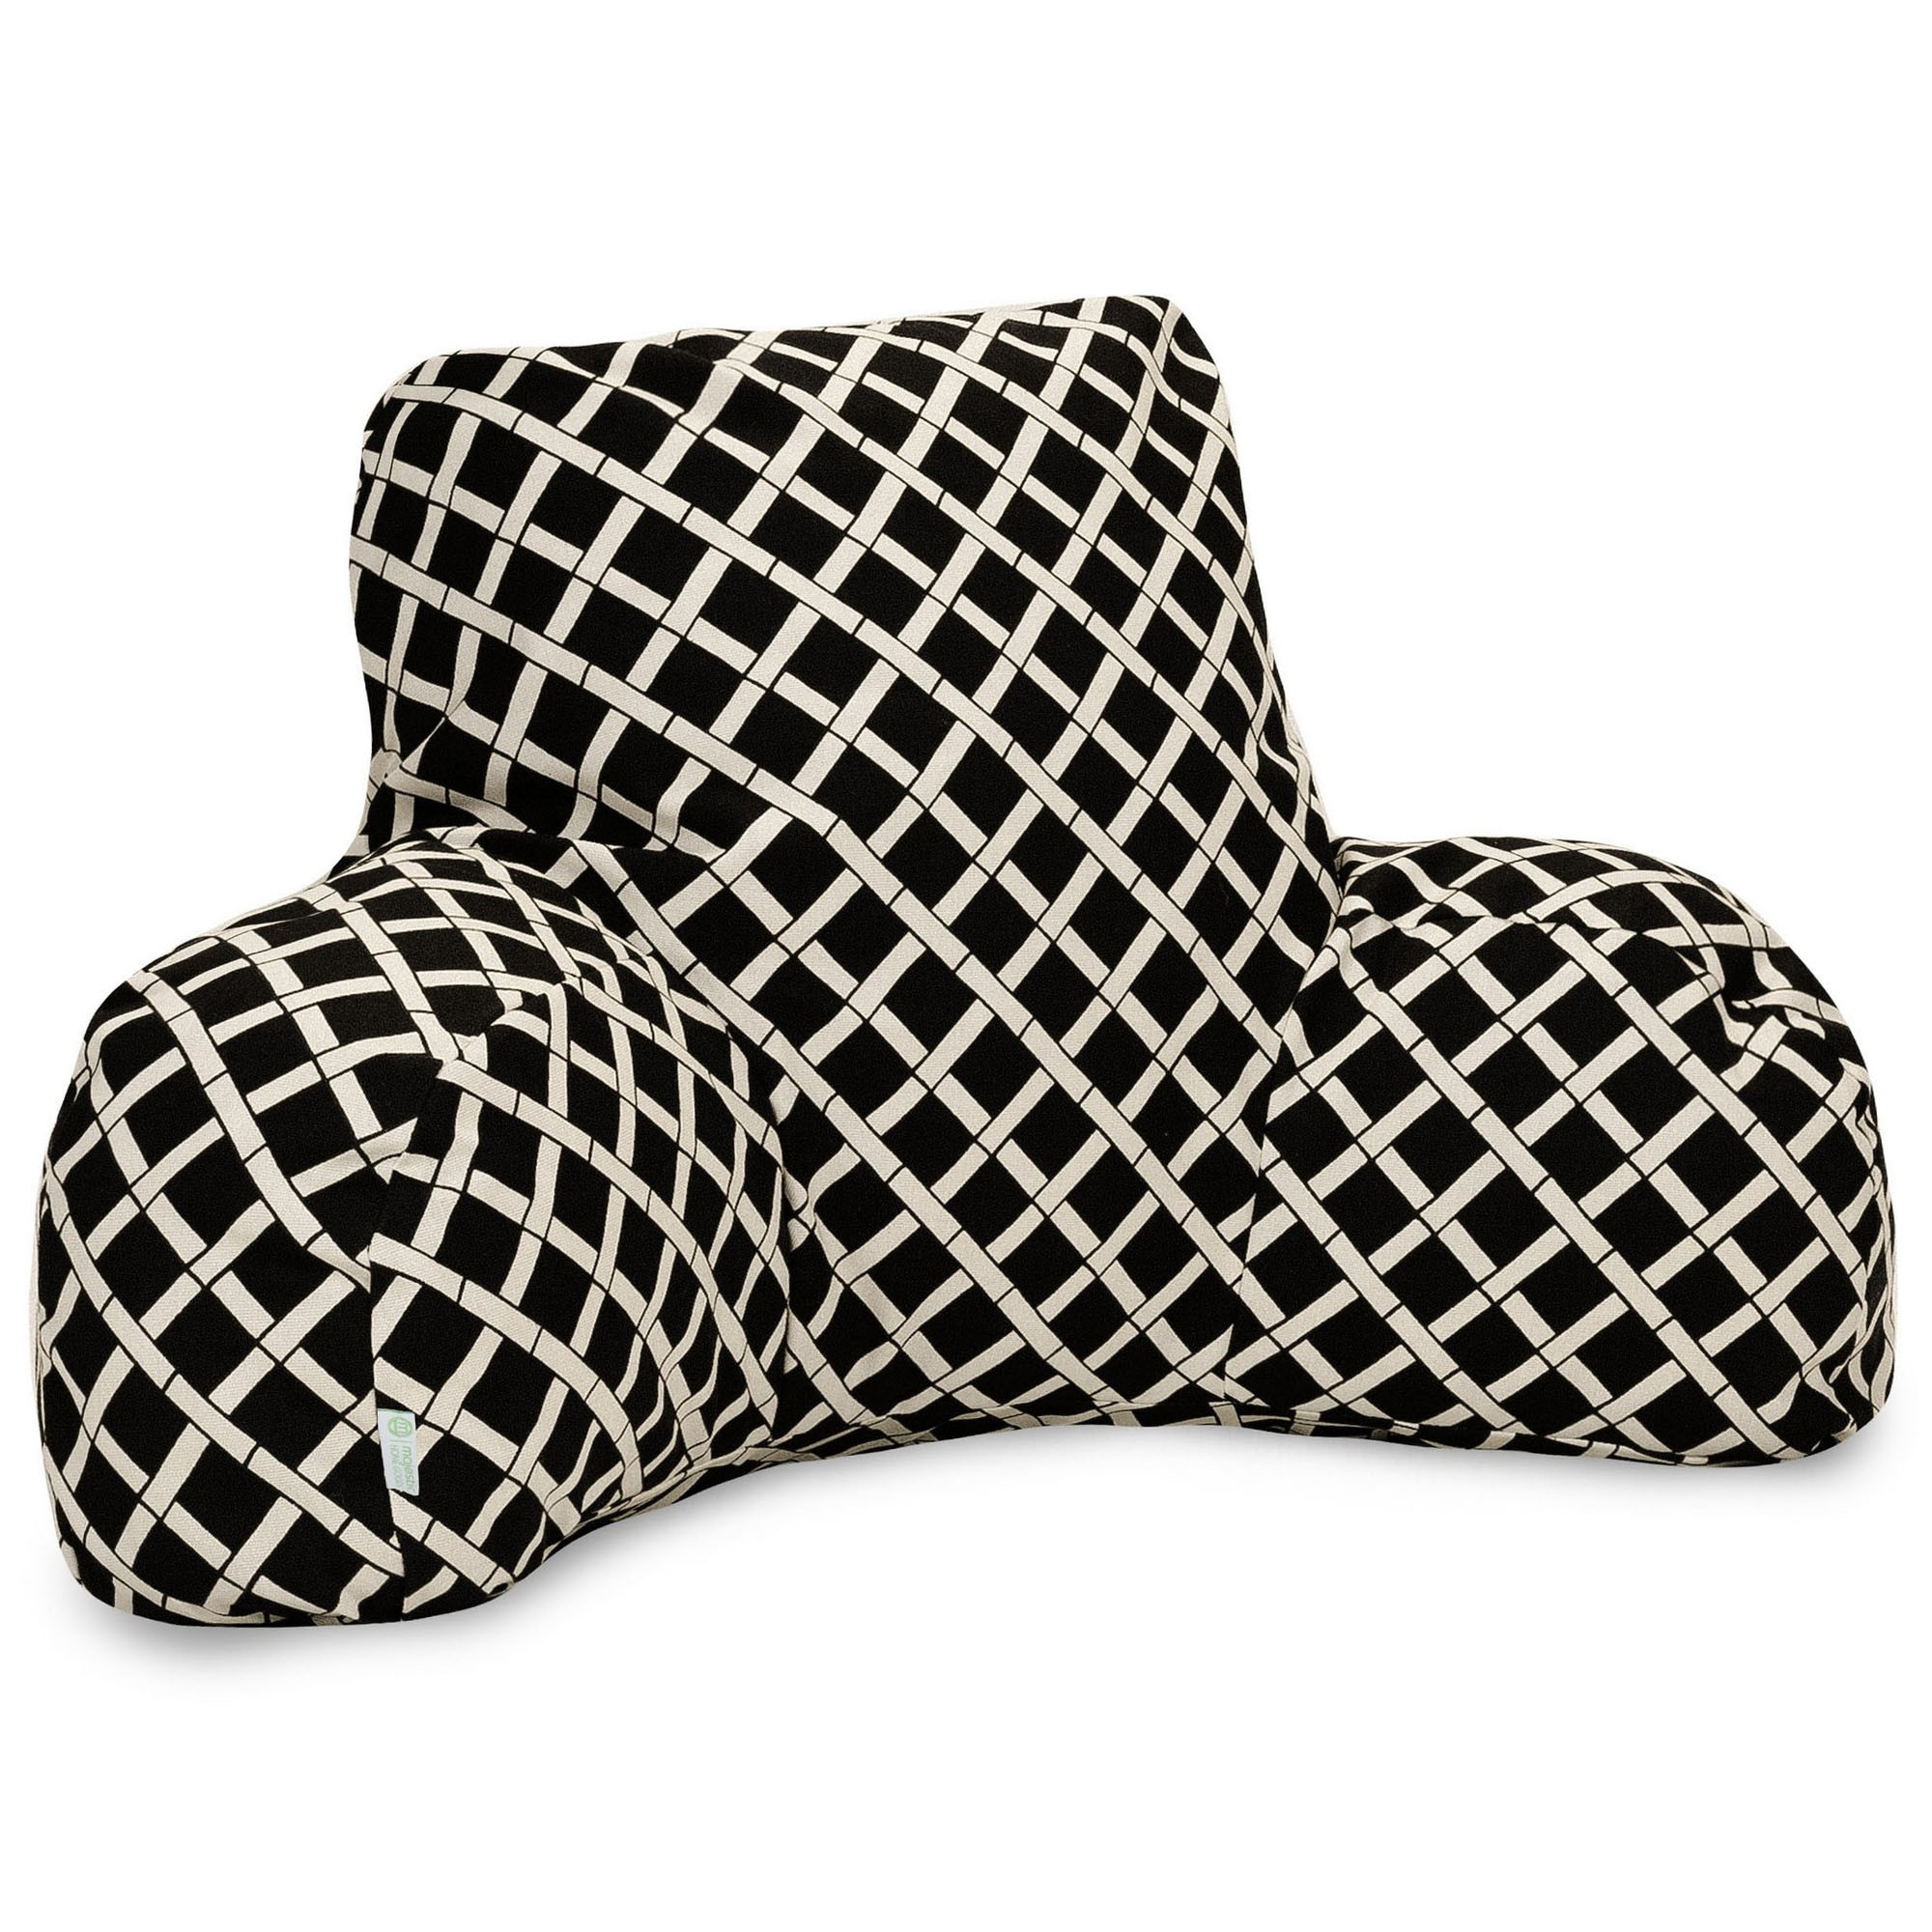 Majestic Home Goods Indoor Outdoor Black Bamboo Reading Pillow with Arms Backrest Back Support for Sitting 33 in L x 6 in W x 18 in H